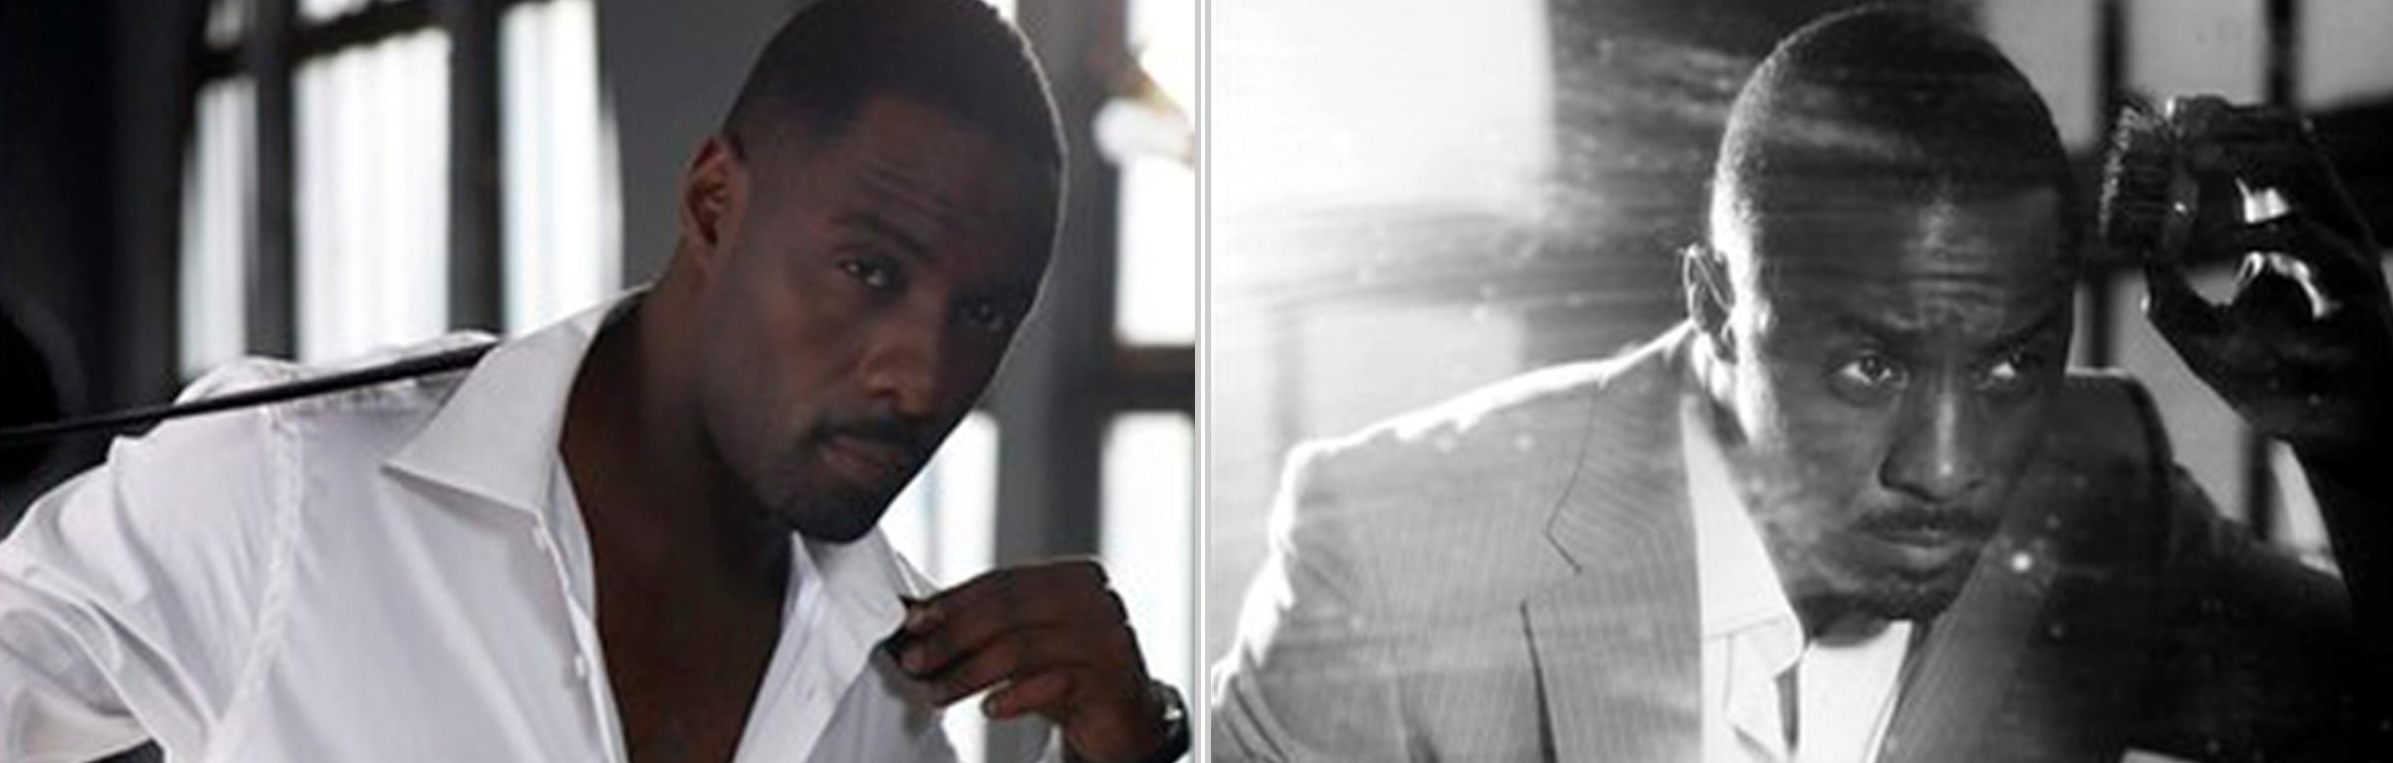 SUGAR RUSH: IDRIS ELBA